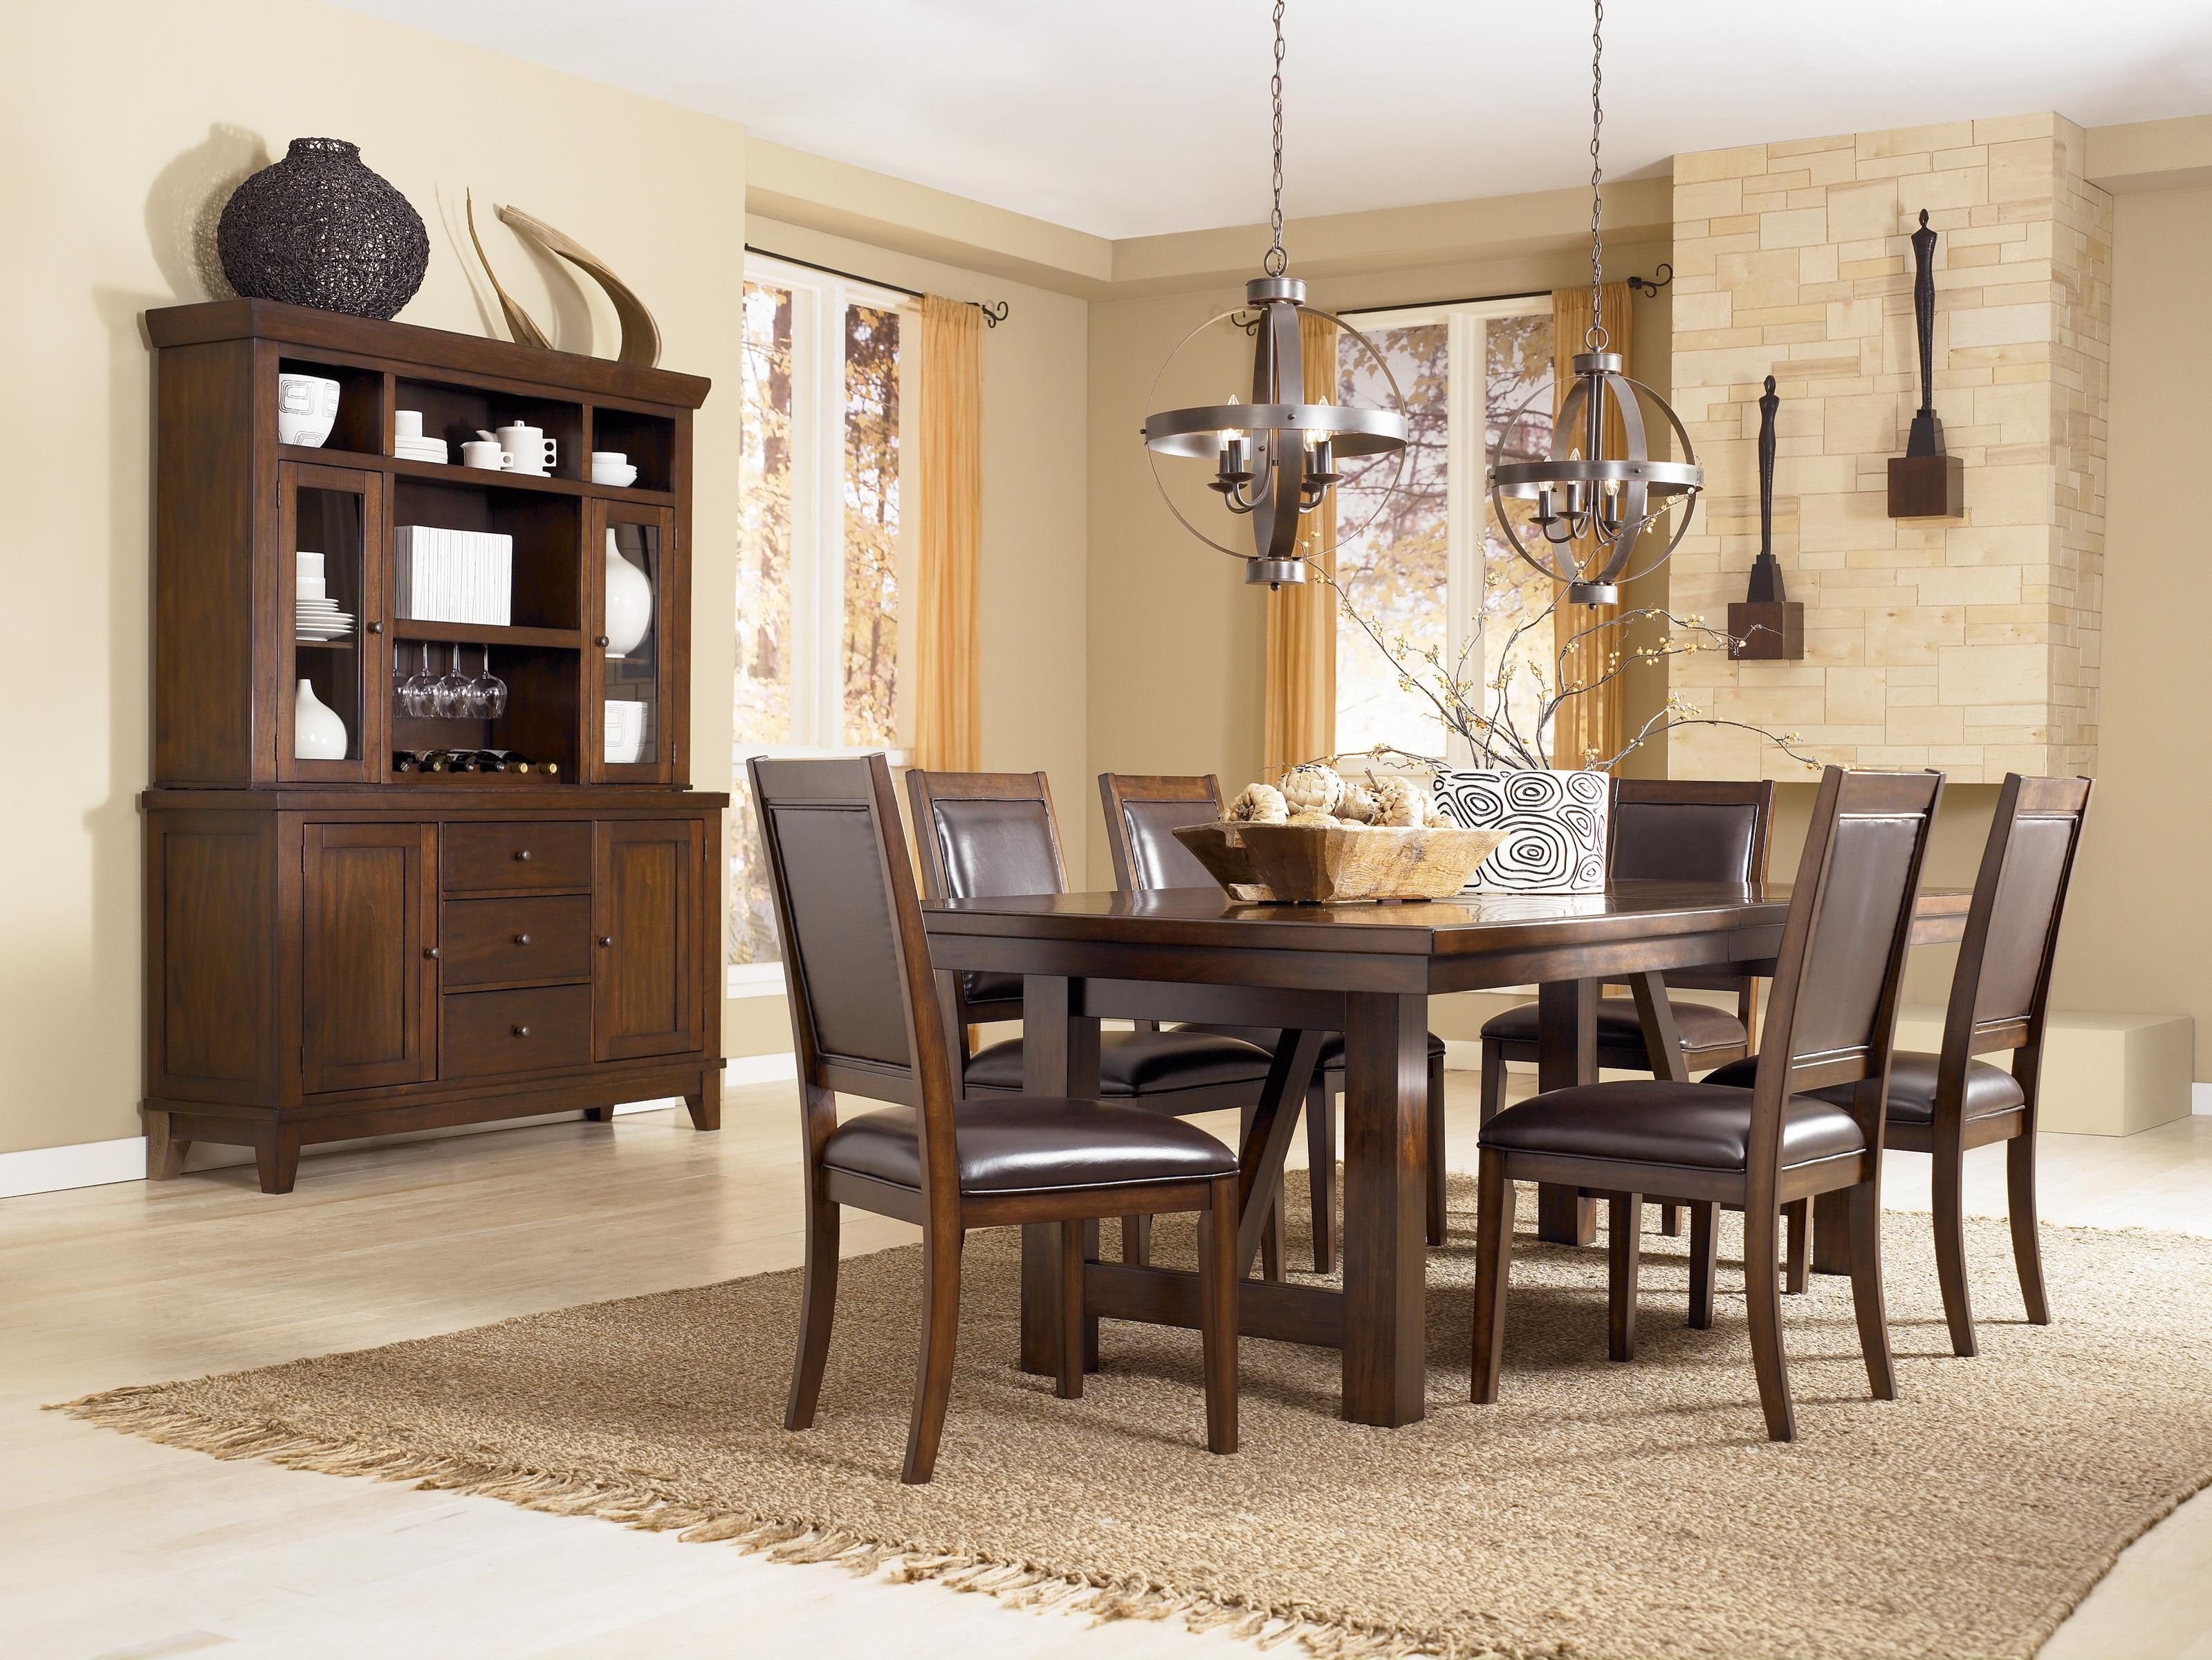 The Birnalla Dining Room Extension Butterfly Table From Ashley Furniture HomeStore AFHS With Block Legs Featuring A Cut Through Design T